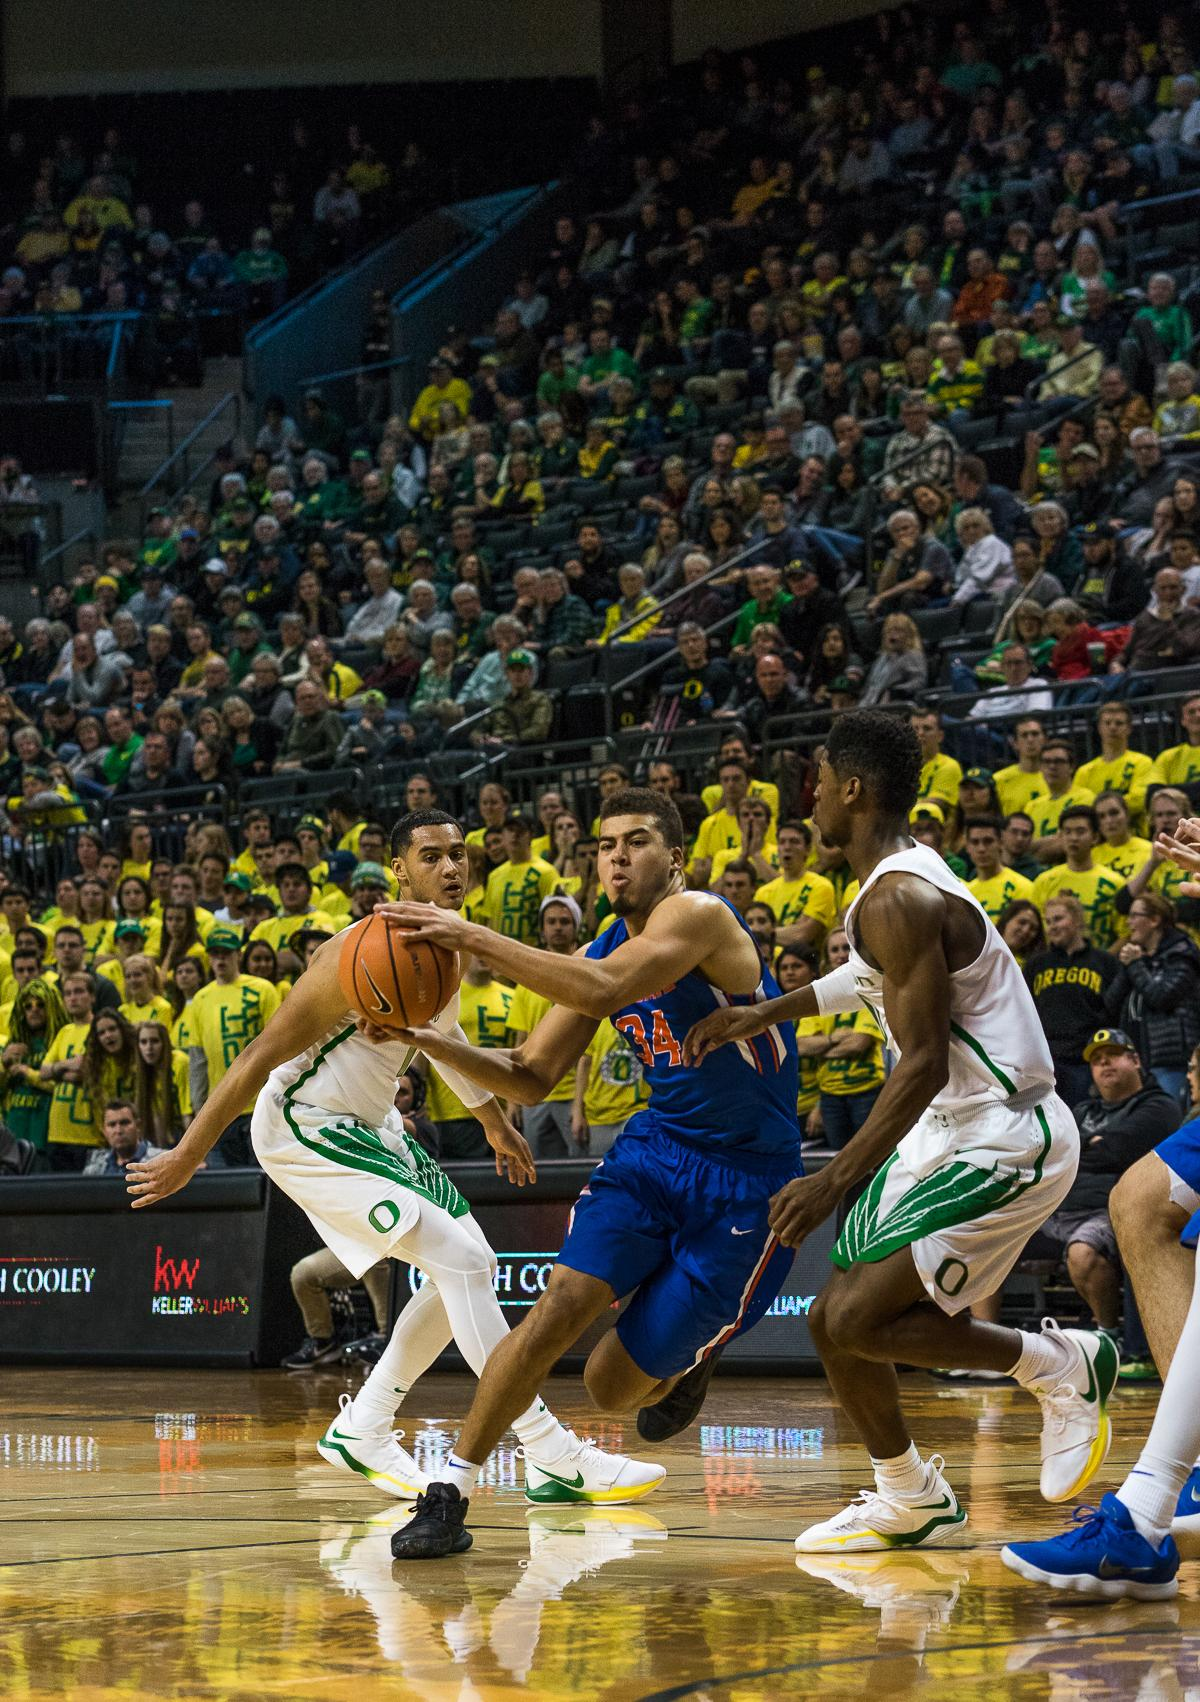 Boise State Bronco Alex Hobbes (#34) attempts to break through the University of Oregon's Victor Bailey Jr. (#10) and Keith Smith (#11). The Boise State Broncos defeated the University of Oregon Ducks 73 – 70 at Matthew Knight Arena in Eugene, Ore., on December 1, 2017. Photo by Kit MacAvoy, Oregon News Lab